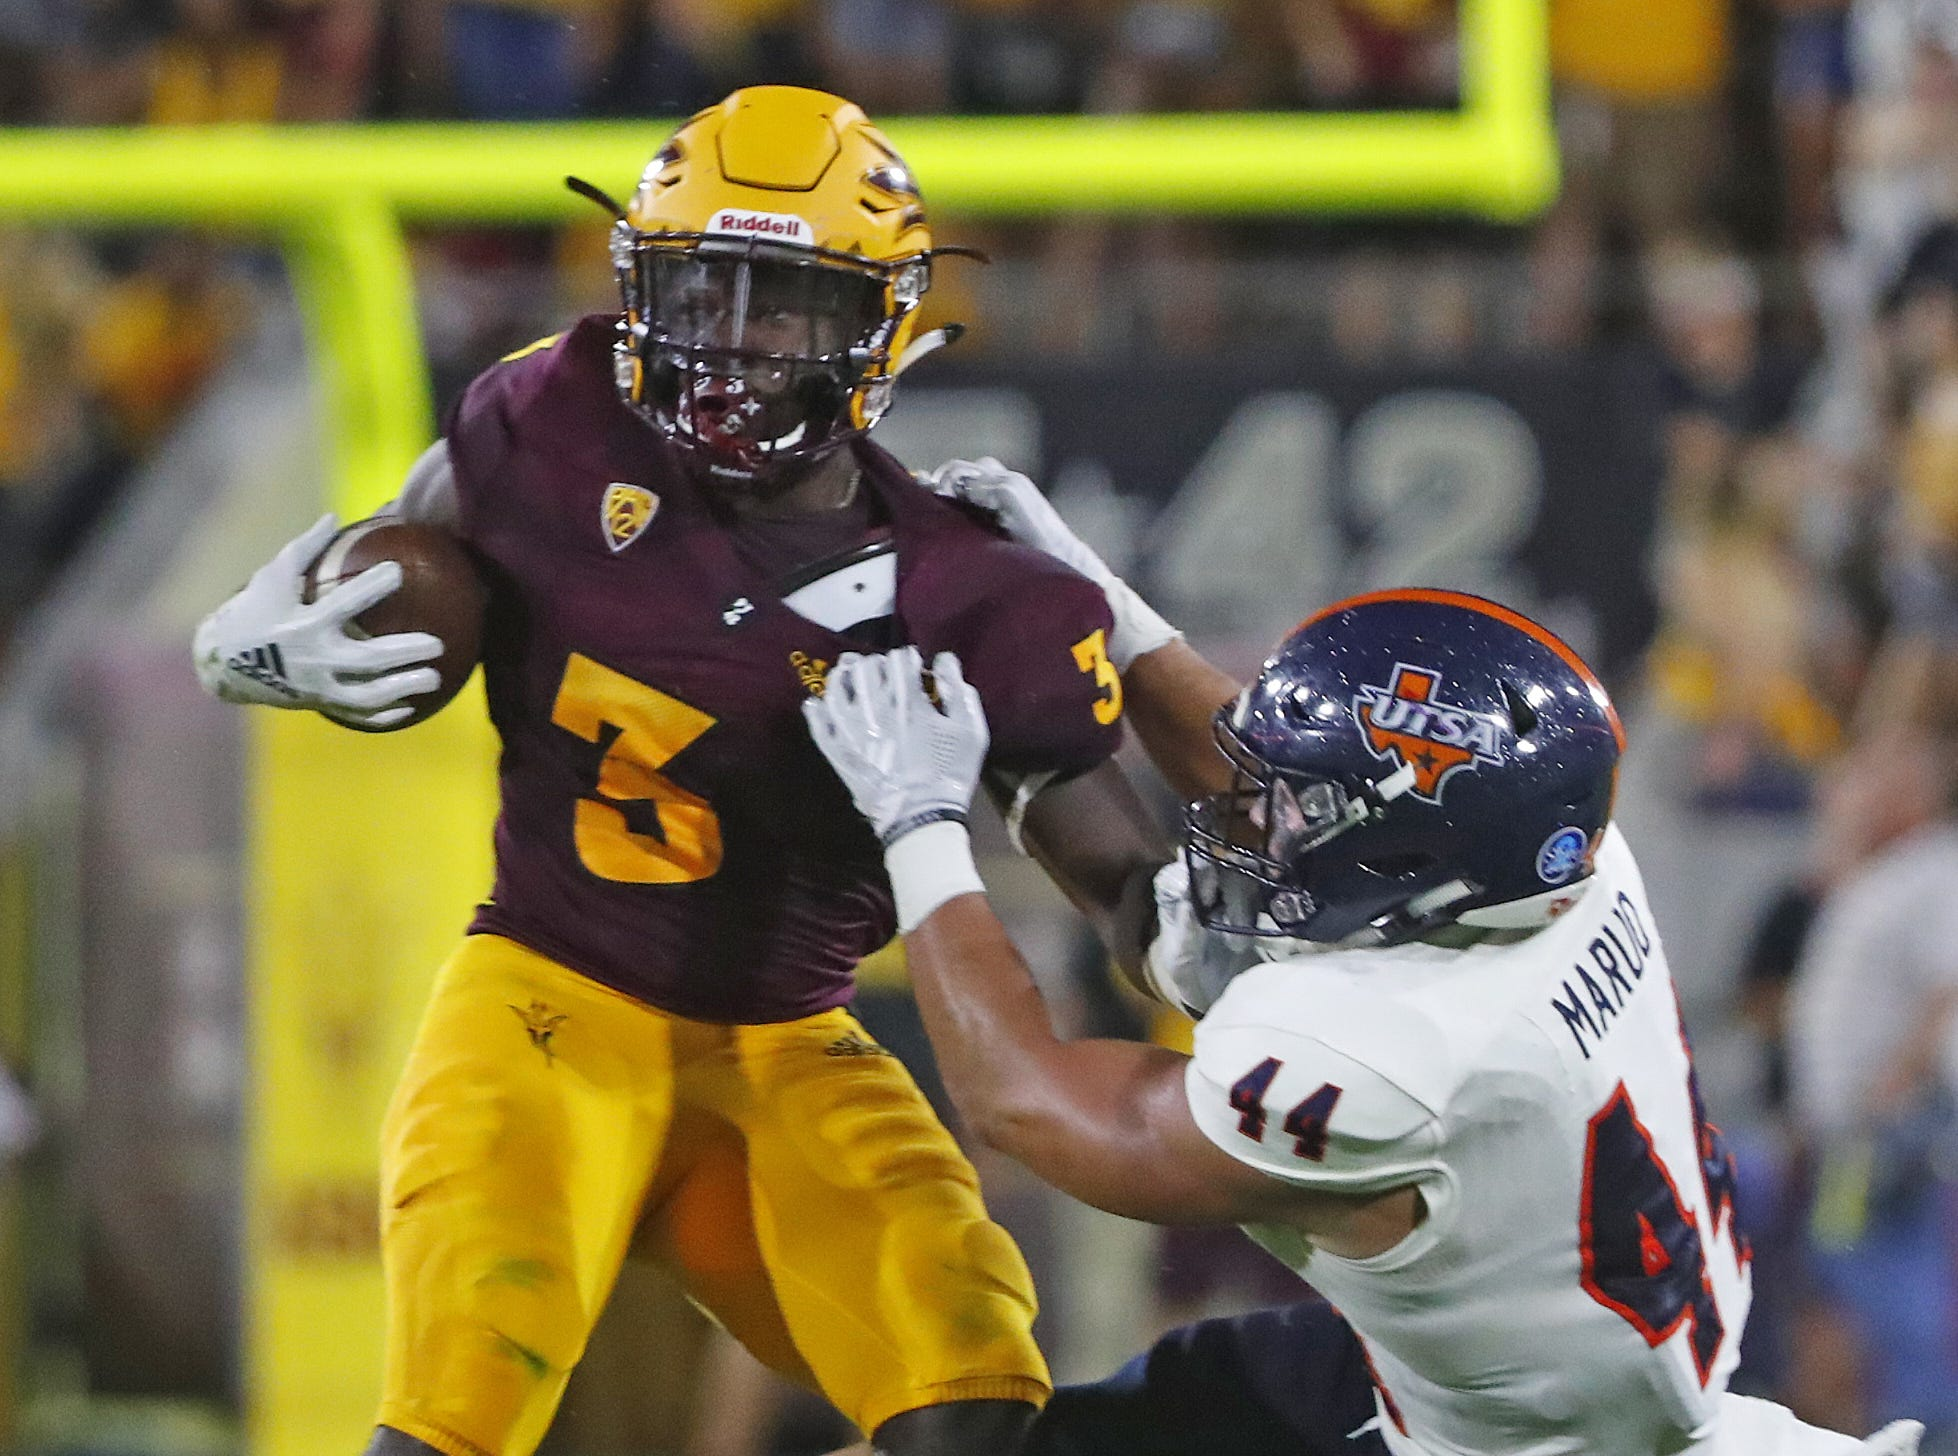 UTSA Roadrunners linebacker Les Maruo (44) tackles Arizona State Sun Devils running back Eno Benjamin (3) during the first half at Sun Devil Stadium in Tempe, Ariz. on Sept. 1, 2018.